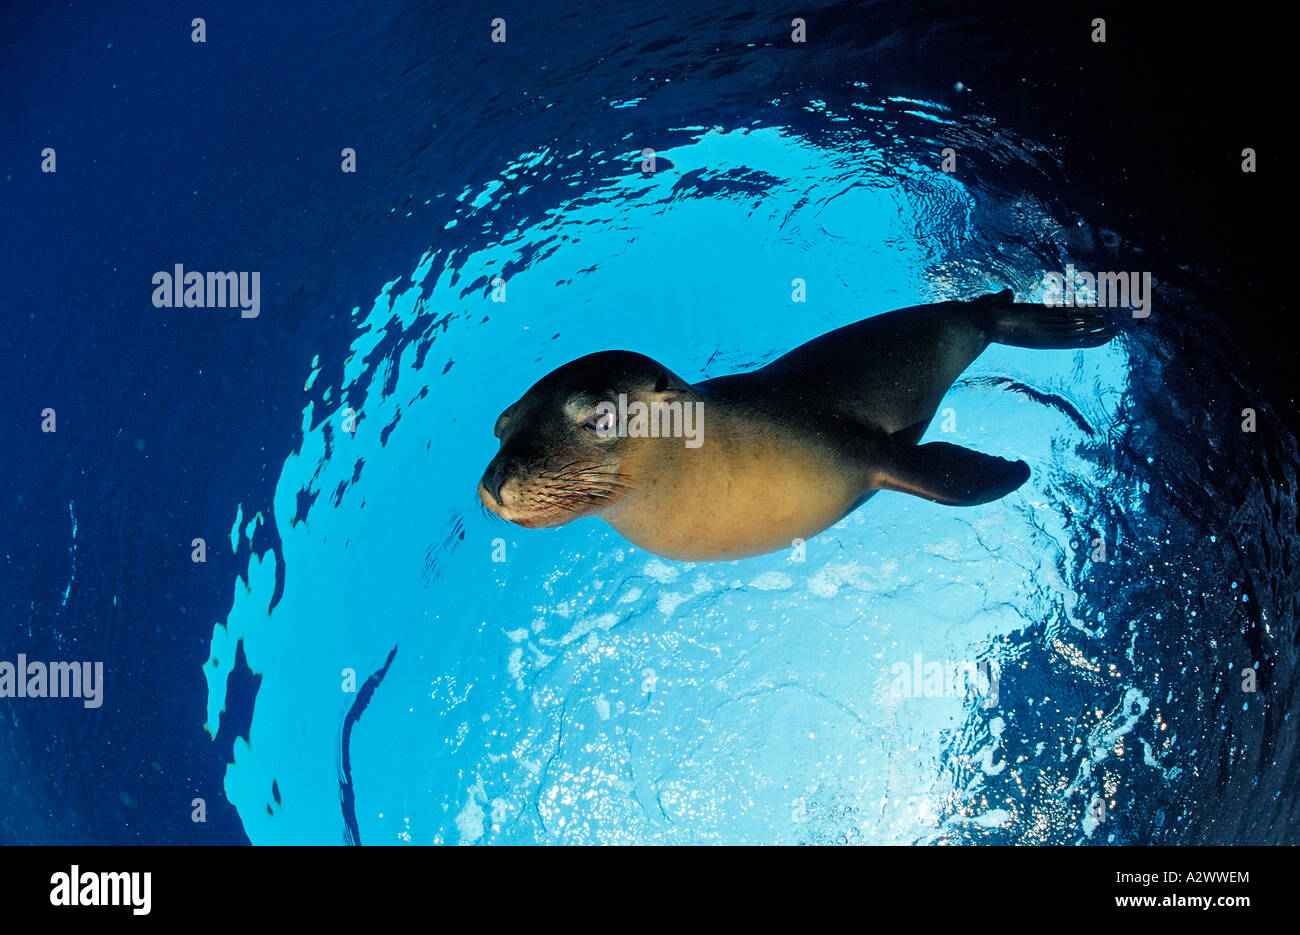 Californian Sea Lion Zalophus californianus Mexico Sea of Cortez Baja California La Paz - Stock Image